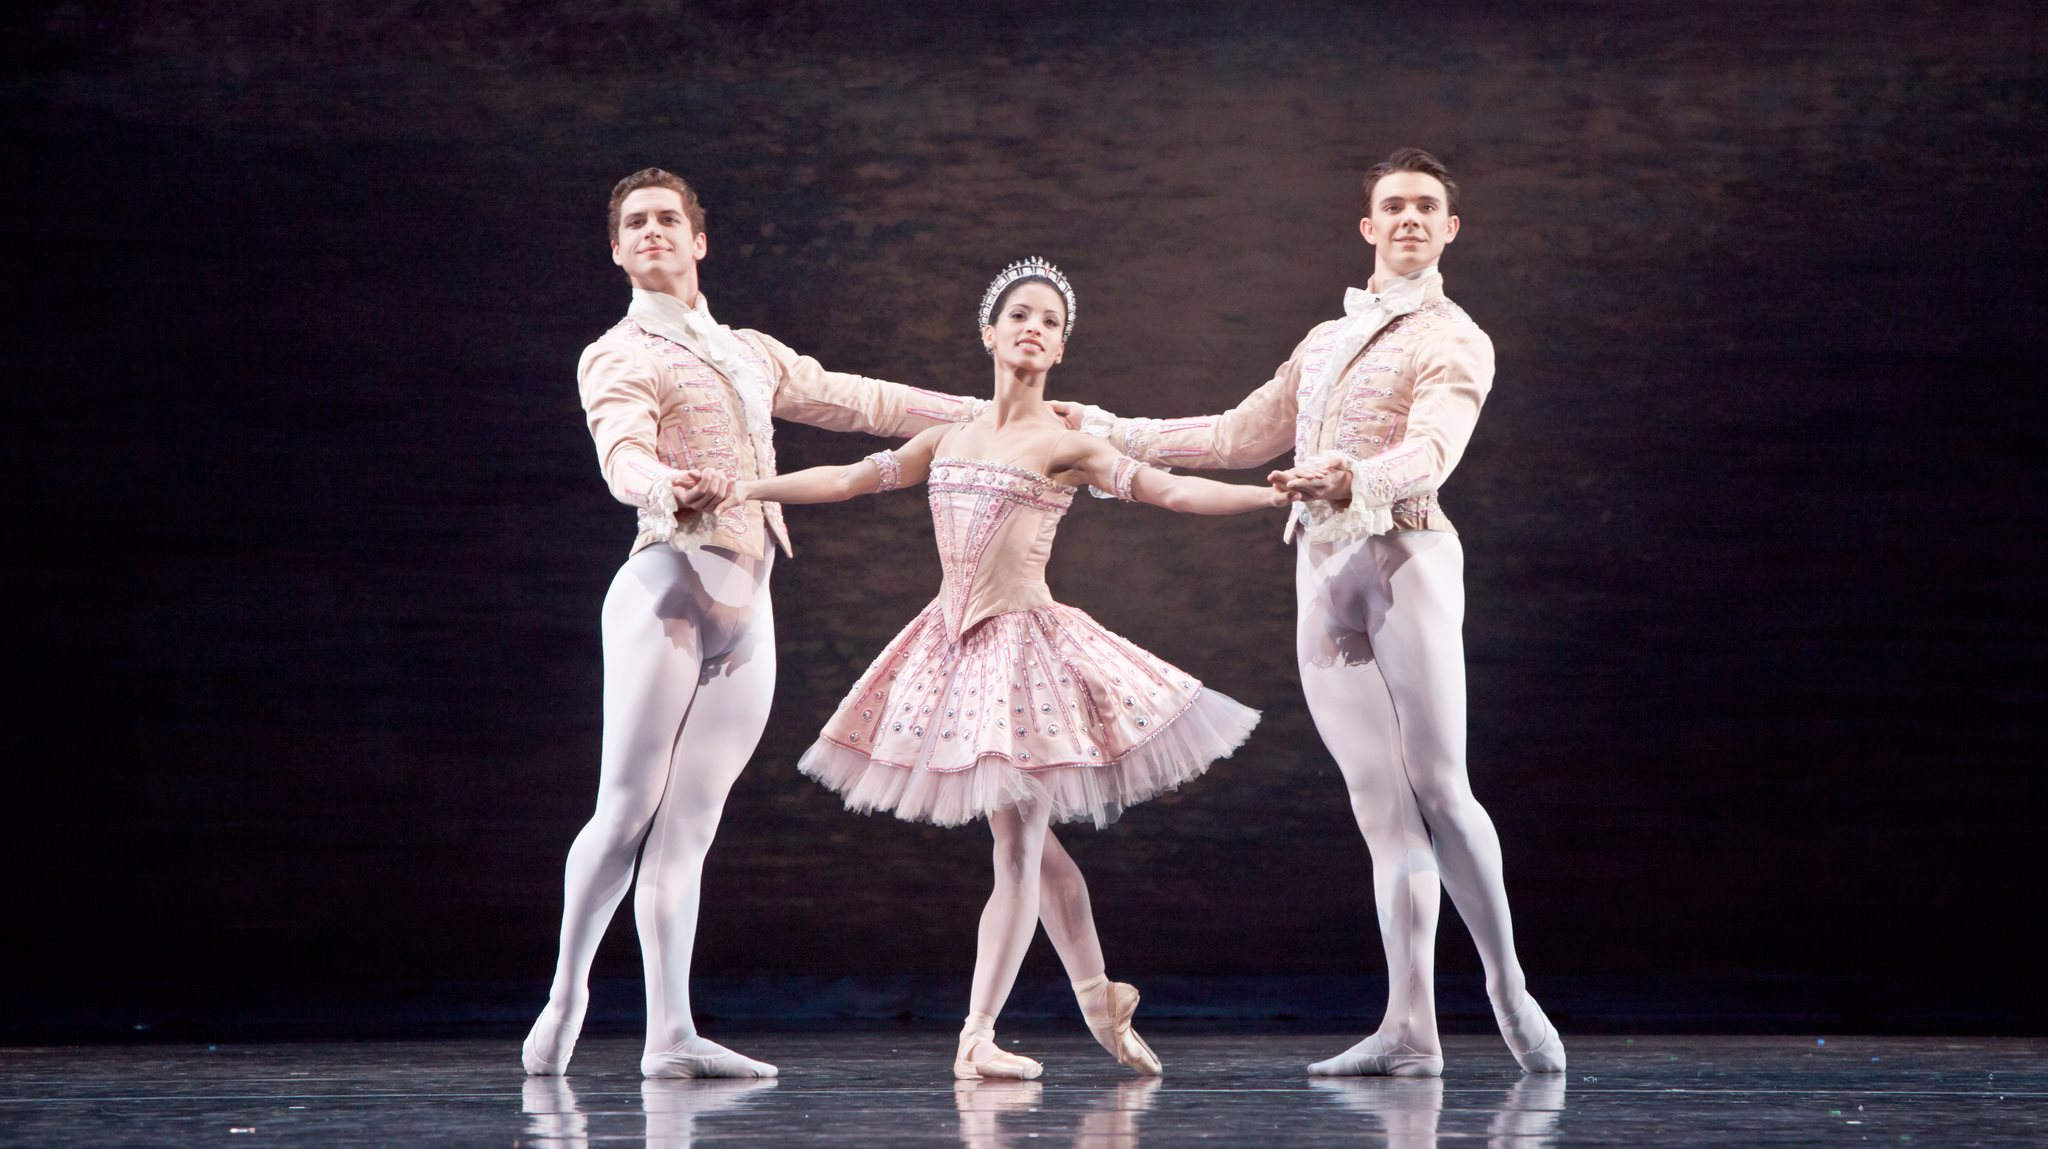 Artists of Houston Ballet in Ballet Imperial. Photo by Amitava Sarkar.